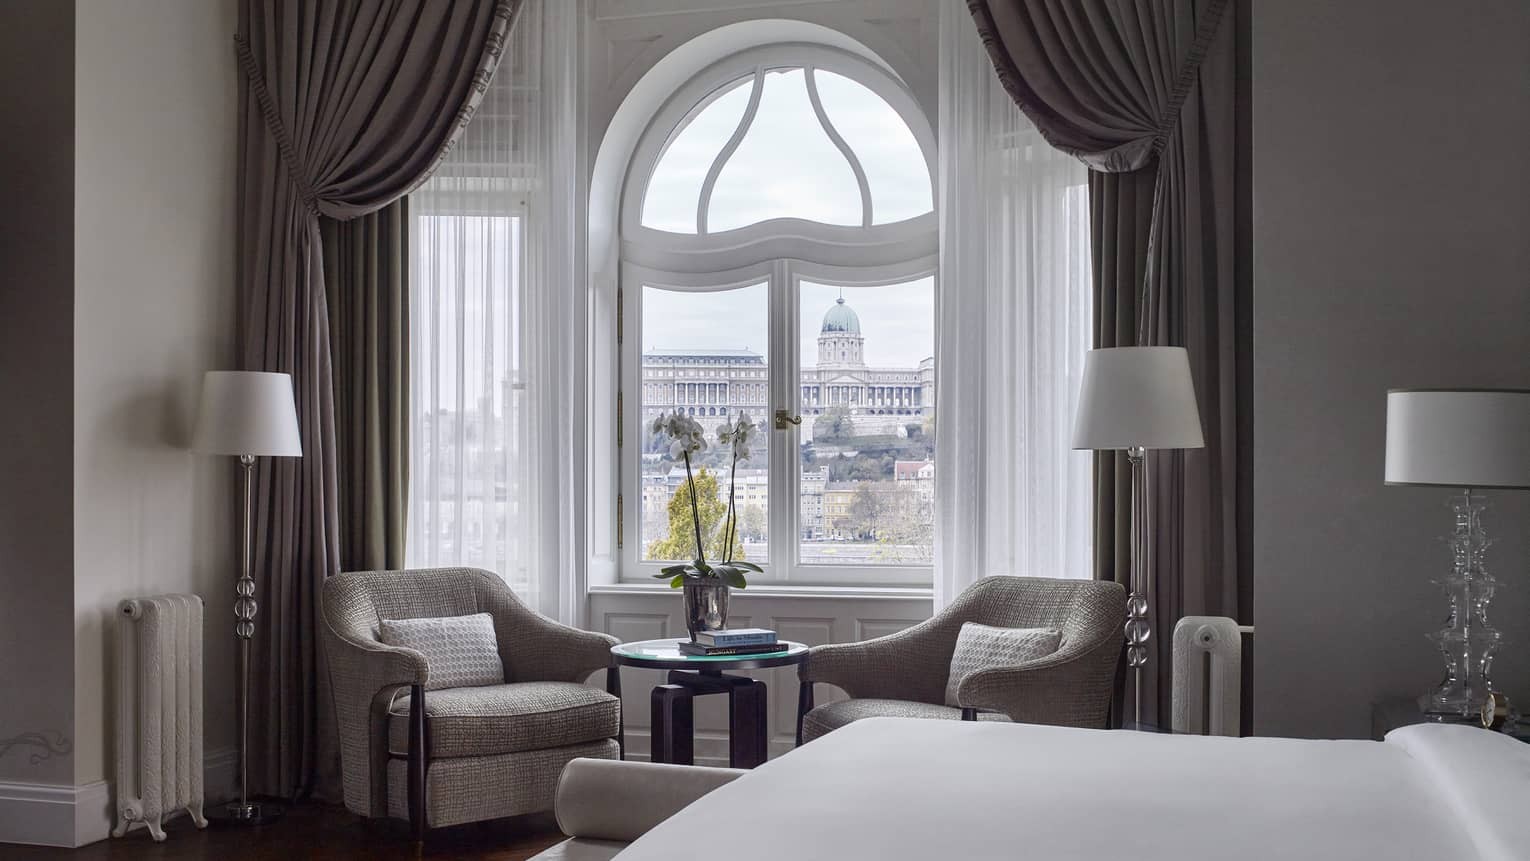 Buda Castle Presidential Suite is furnished with a two sitting chairs next to a curved window, lamps, a large bed and gray curtains.